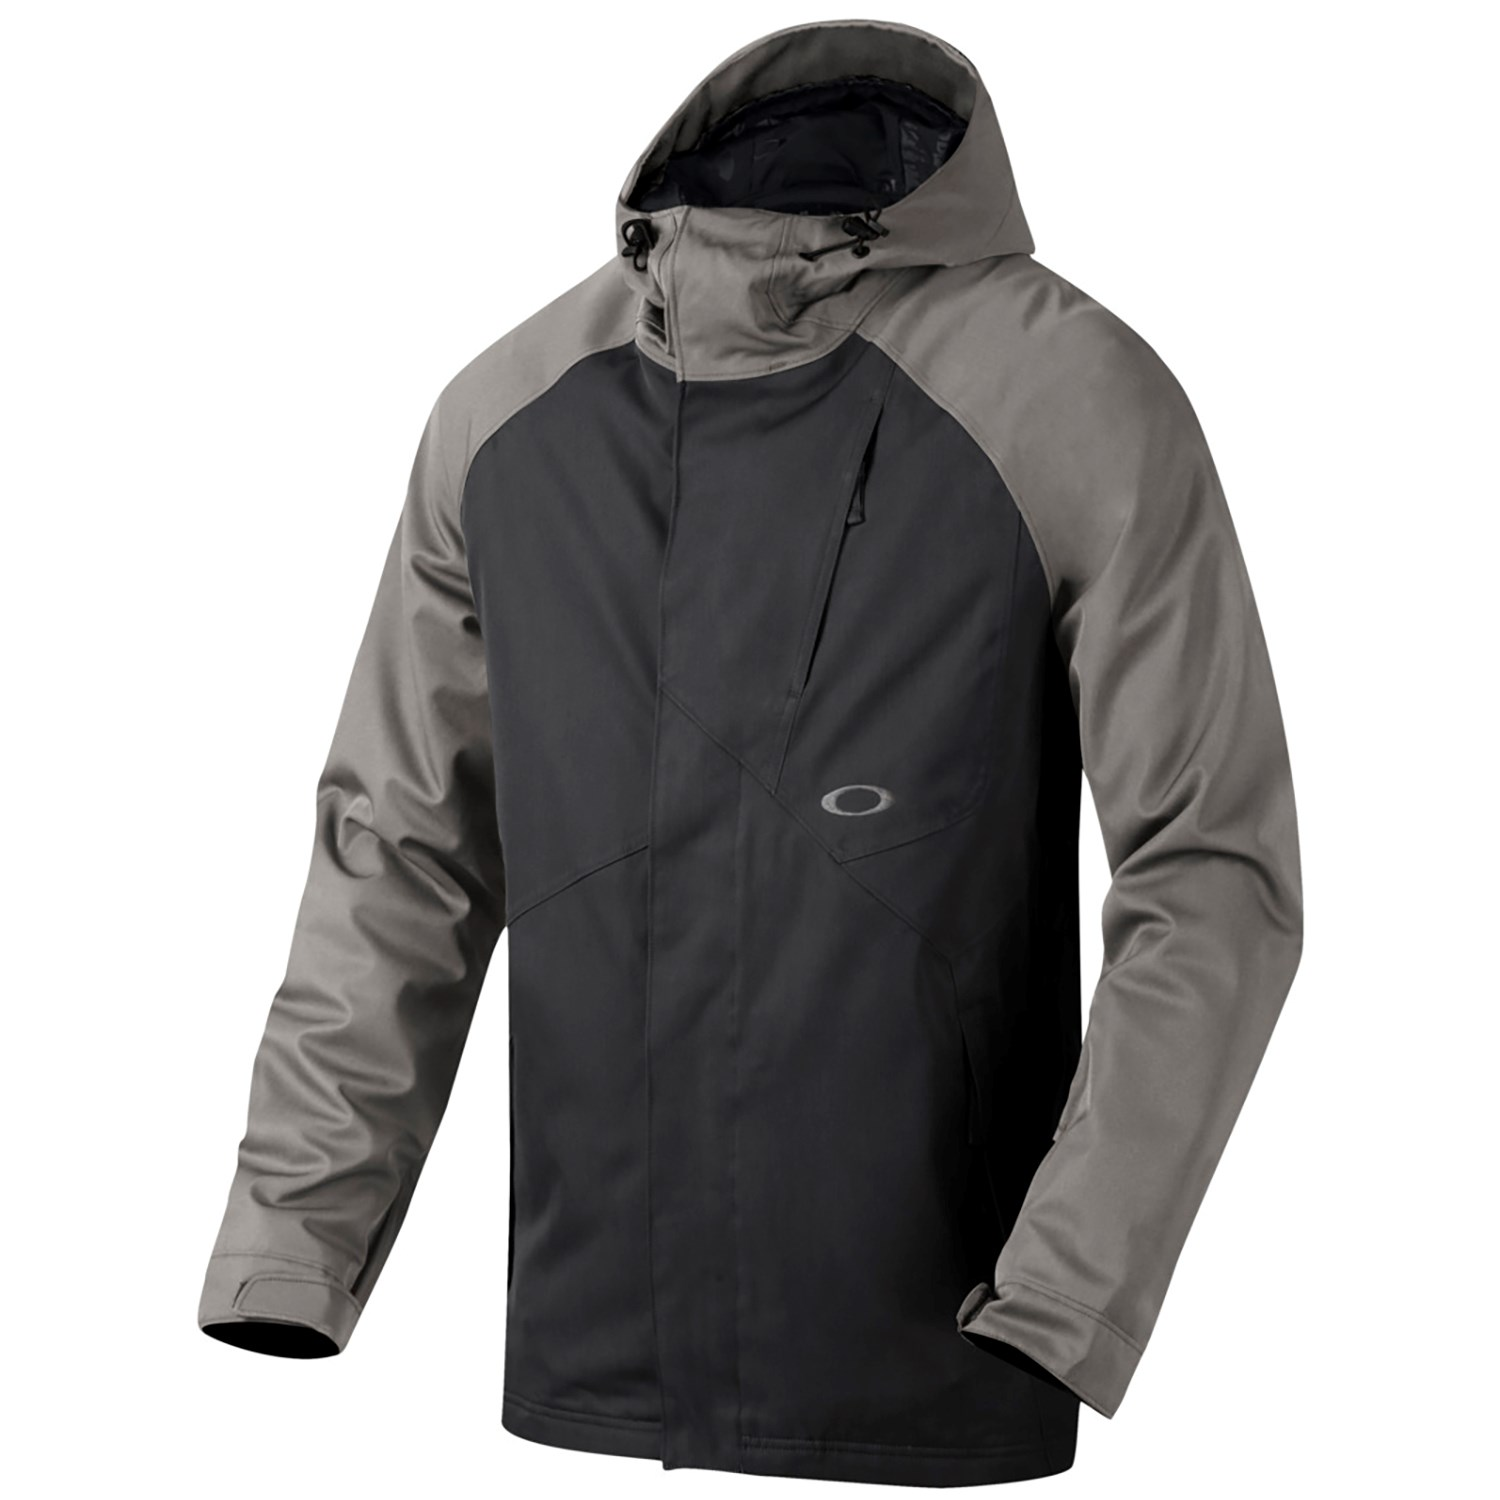 oakley jacket  Oakley Regulator BioZone鈩? Jacket